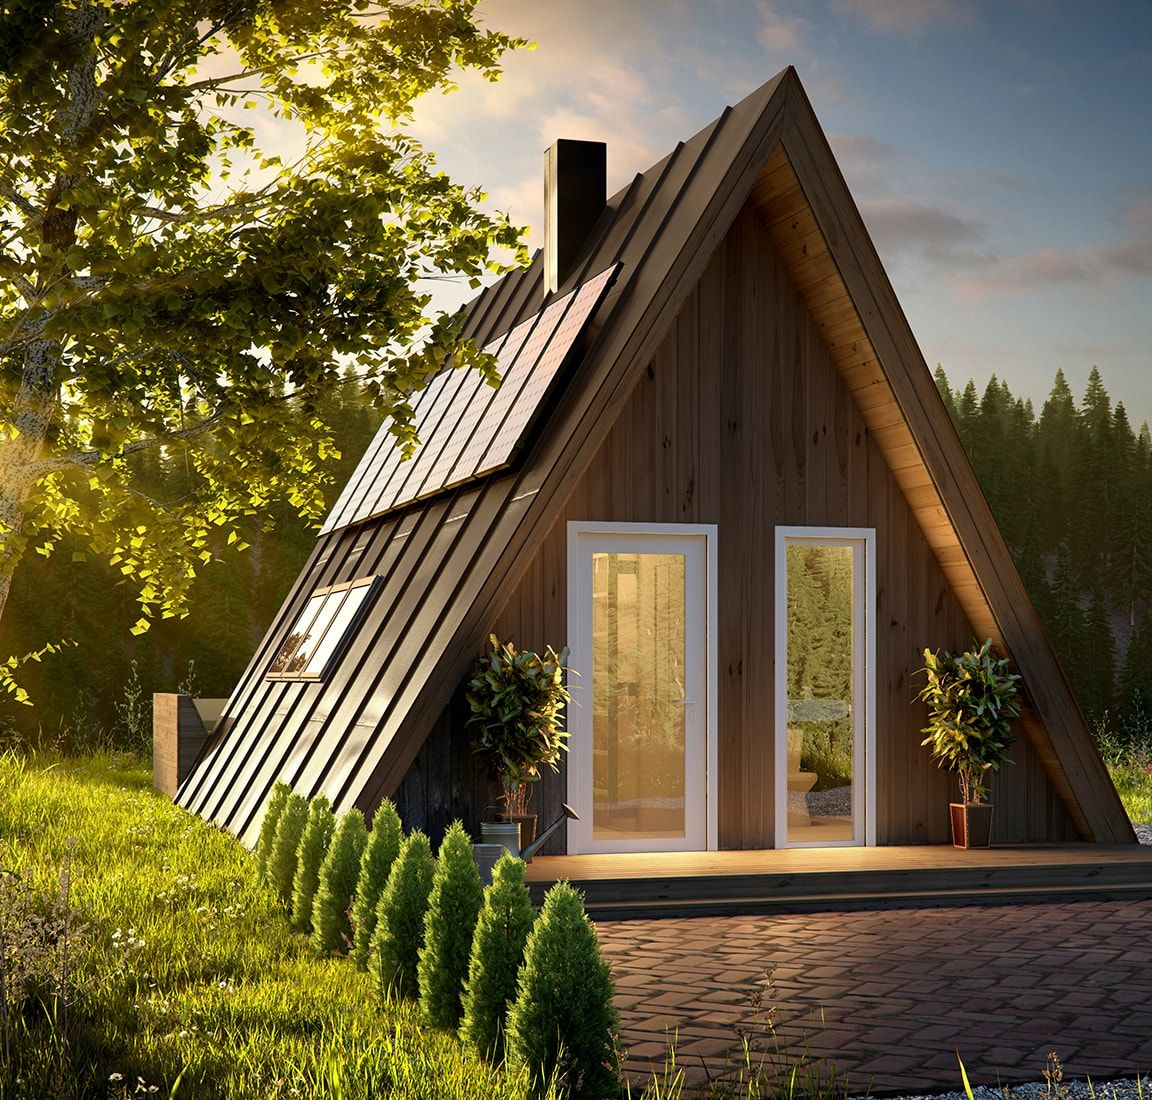 Affordable housing with a-frame kit homes | A-Framing it | Pinterest ...